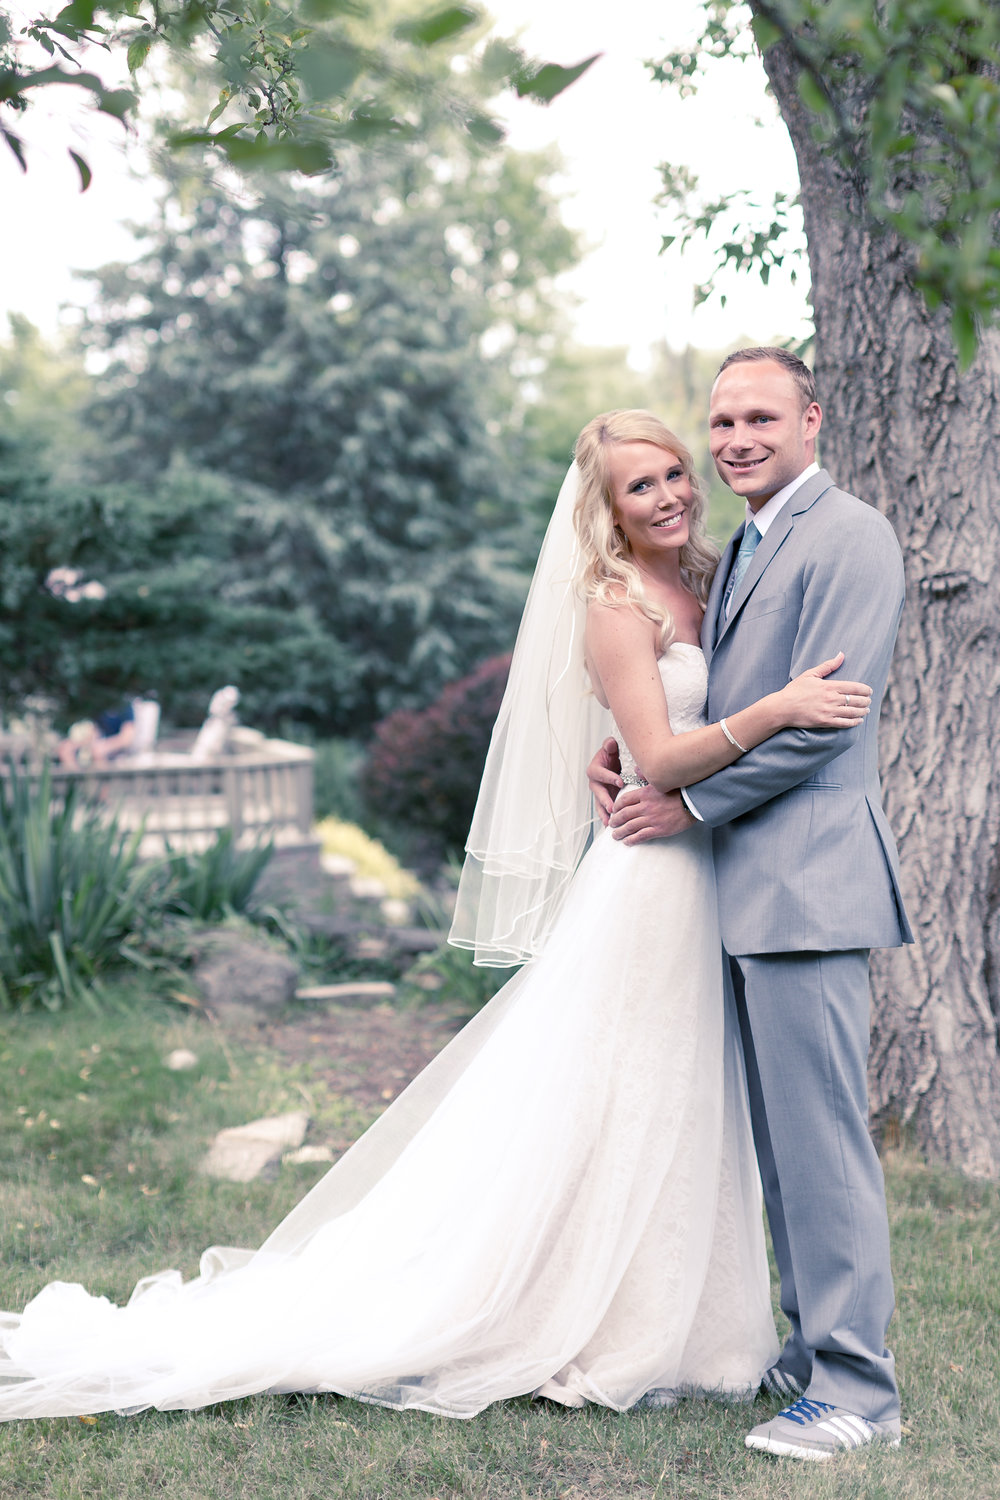 Kelly & Mike | Married | Lauren Alisse Photography -95.jpg